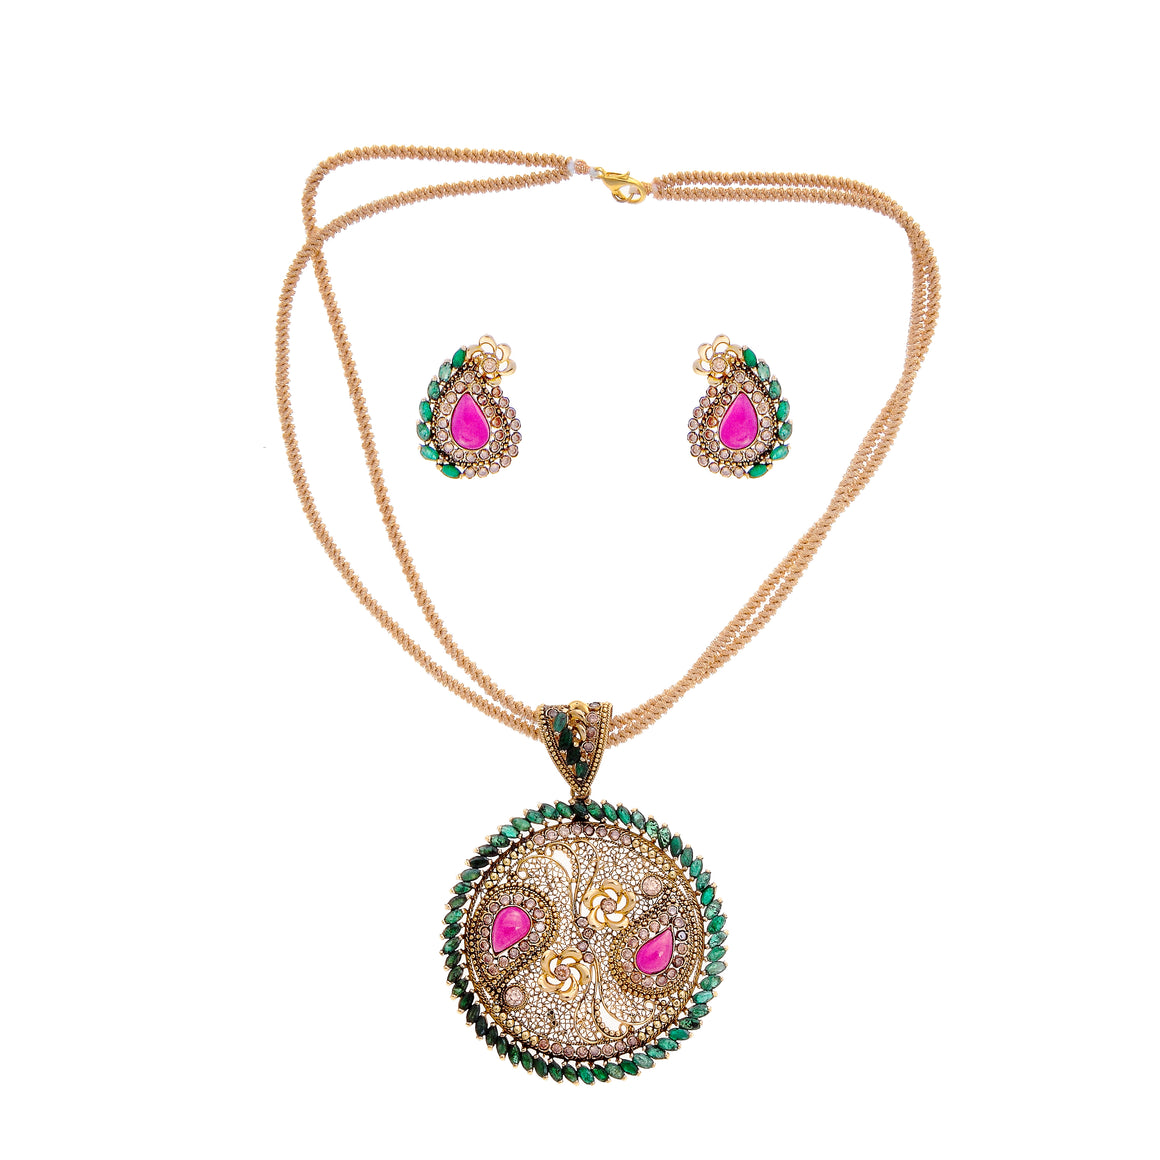 Ruby and Emerald Pendant Set in 22K gold